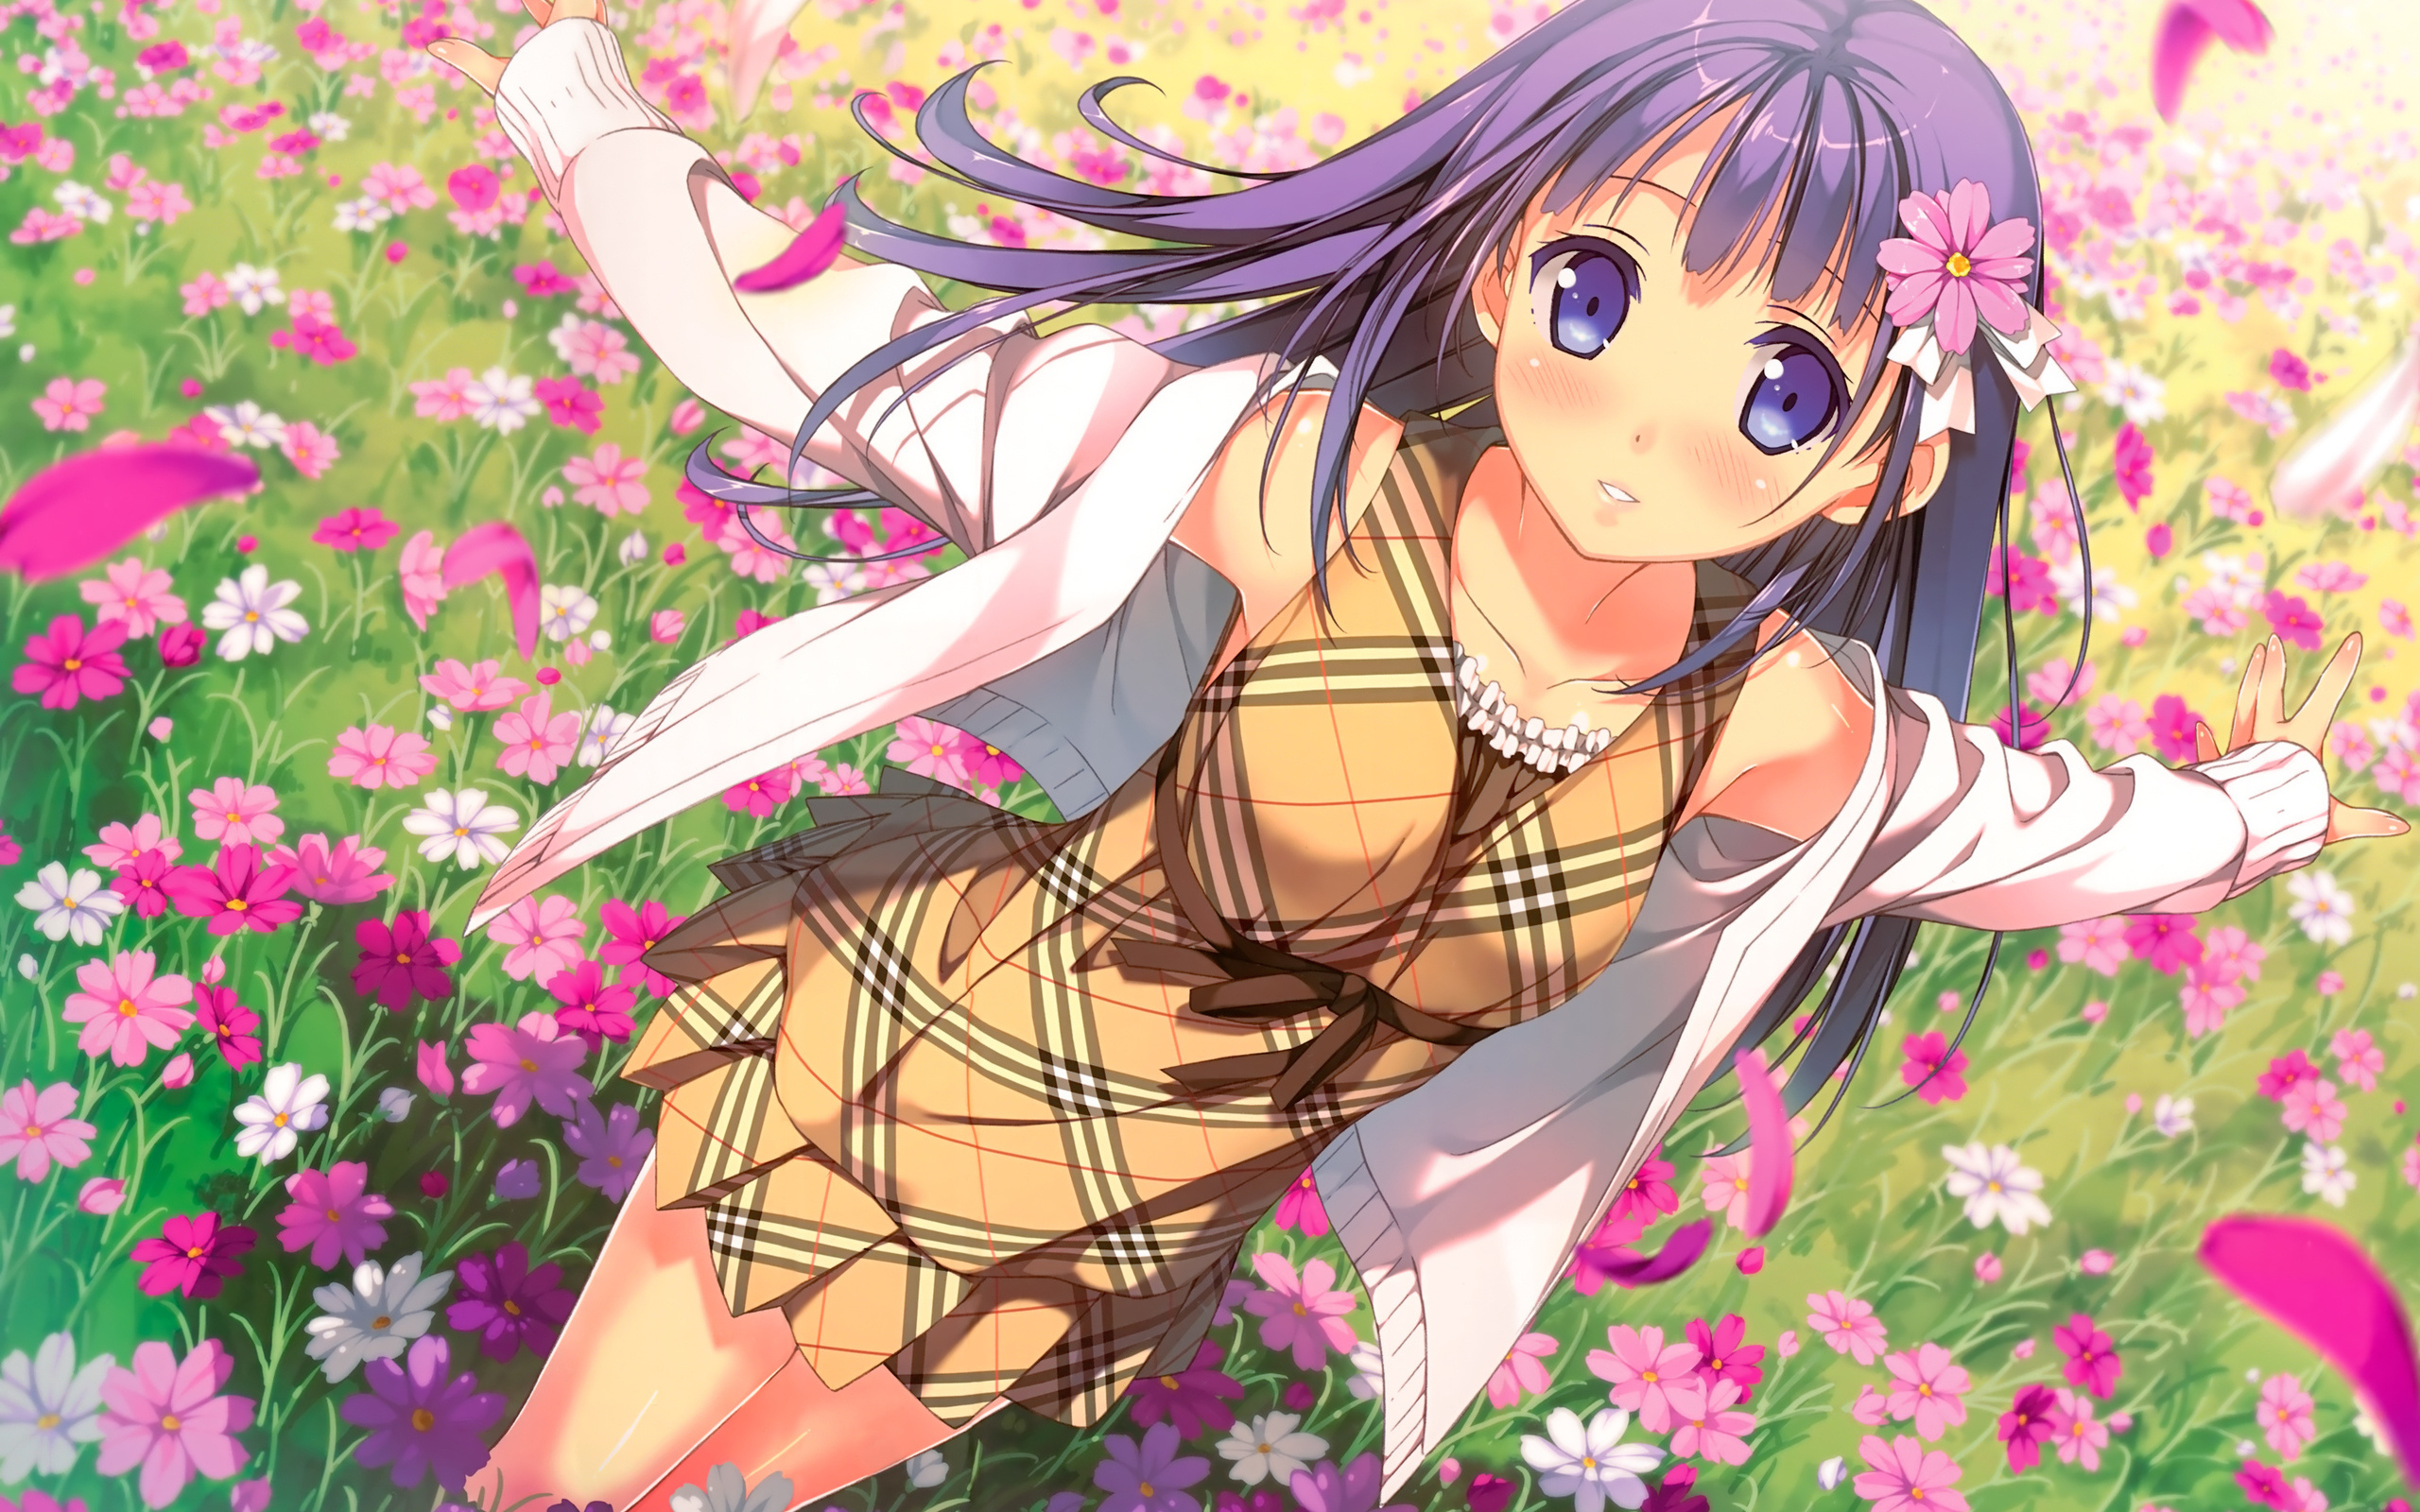 Anime girl and flowers field 2560 x 1600 download close